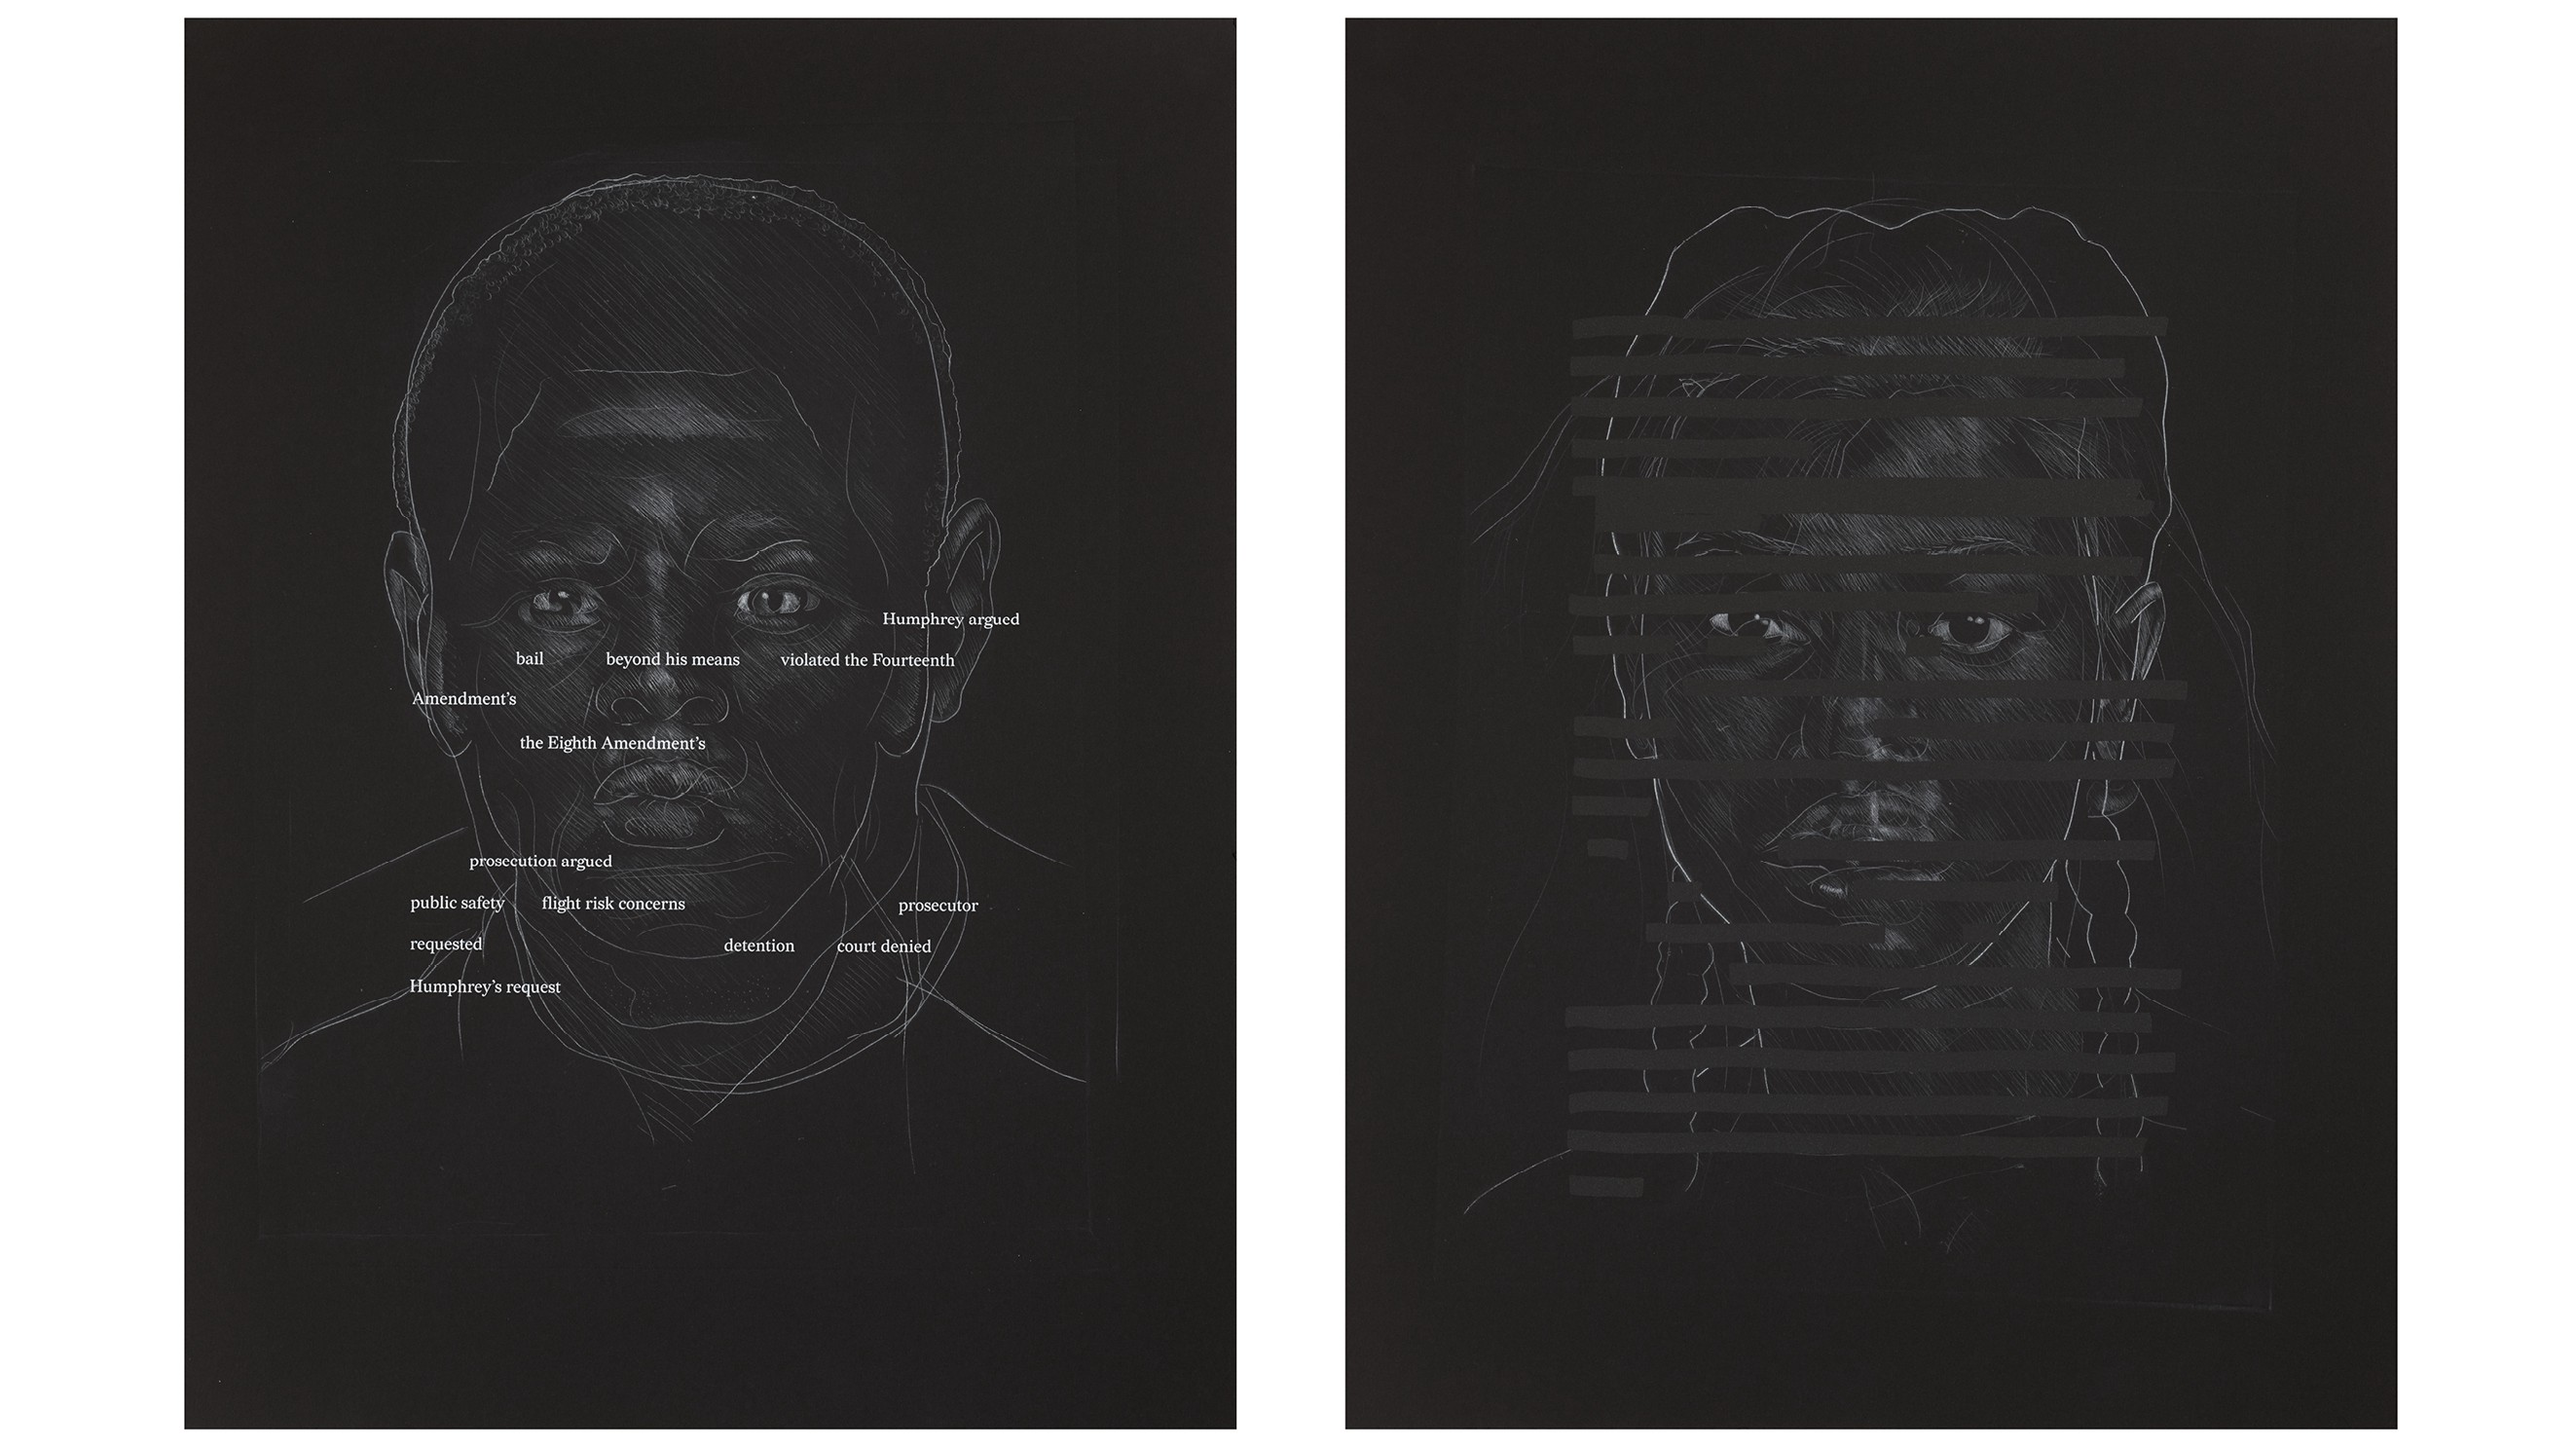 Titus Kaphar and Reginald Dwayne Betts, Redaction (San Francisco), 2020. Etching and silkscreen on paper.